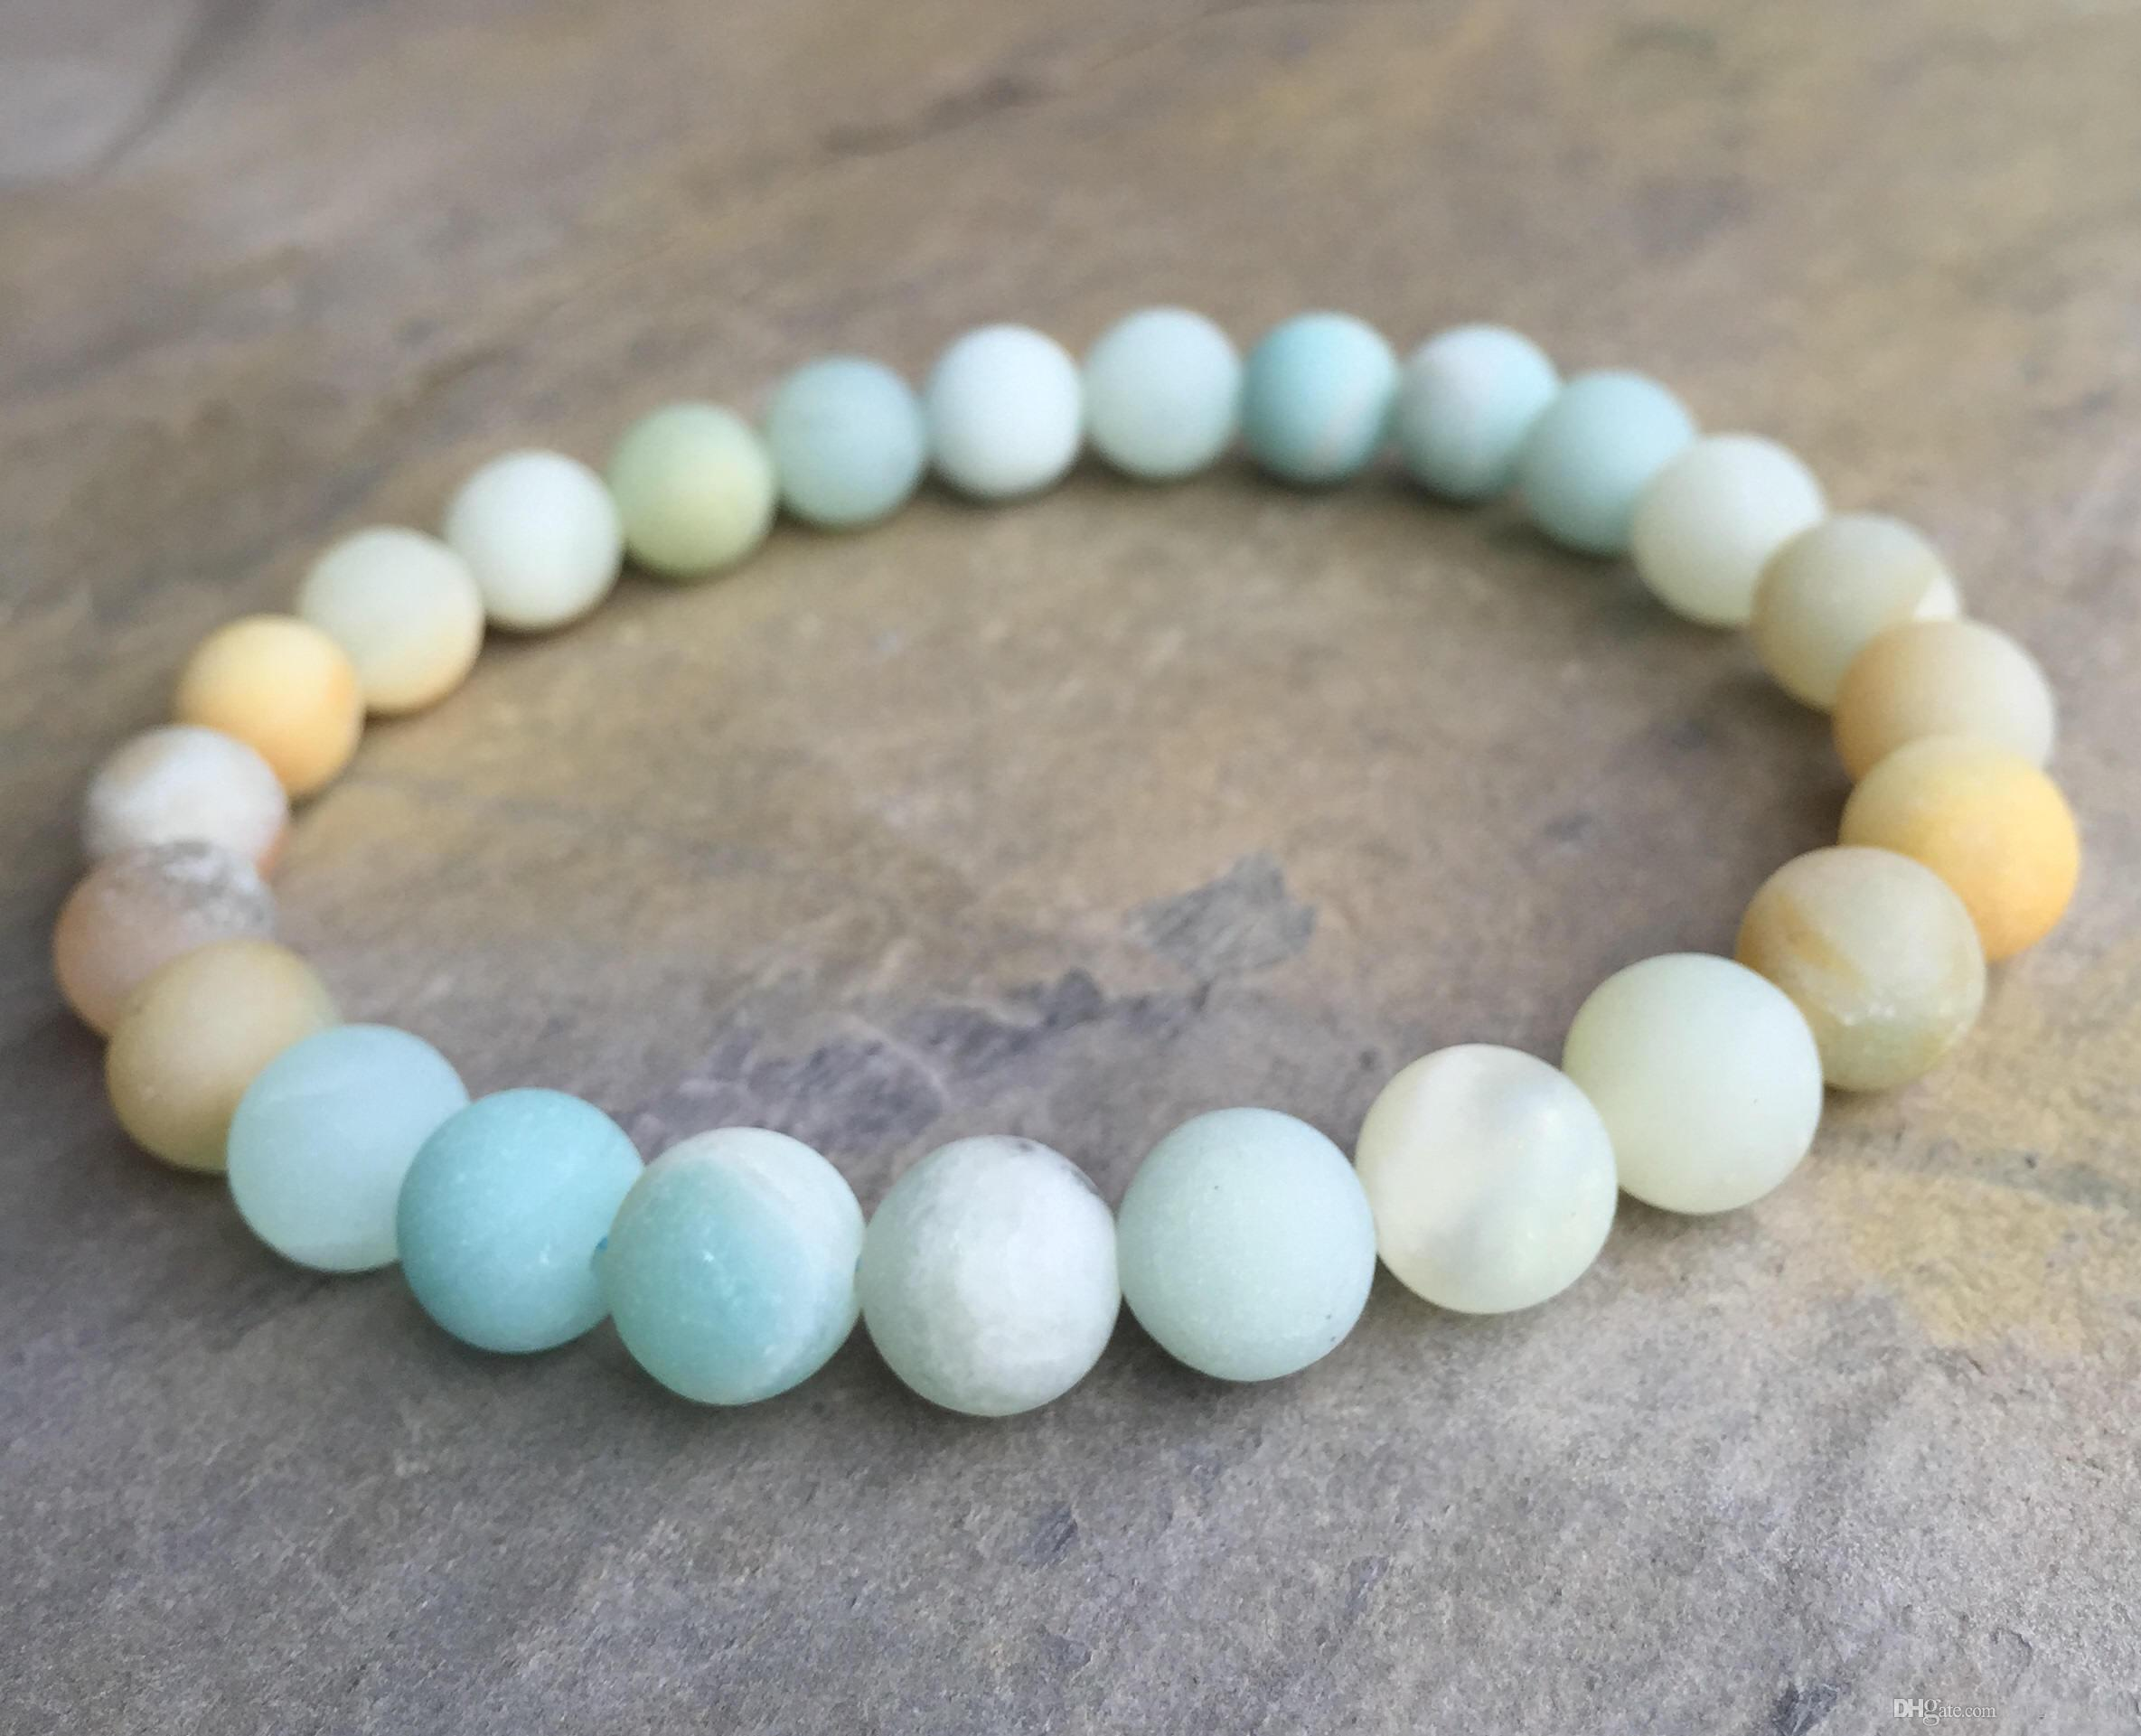 collections amazonite bracelet birth birthstone stones cord elastic on star stretch jewelry sign rounds matte zodiac by